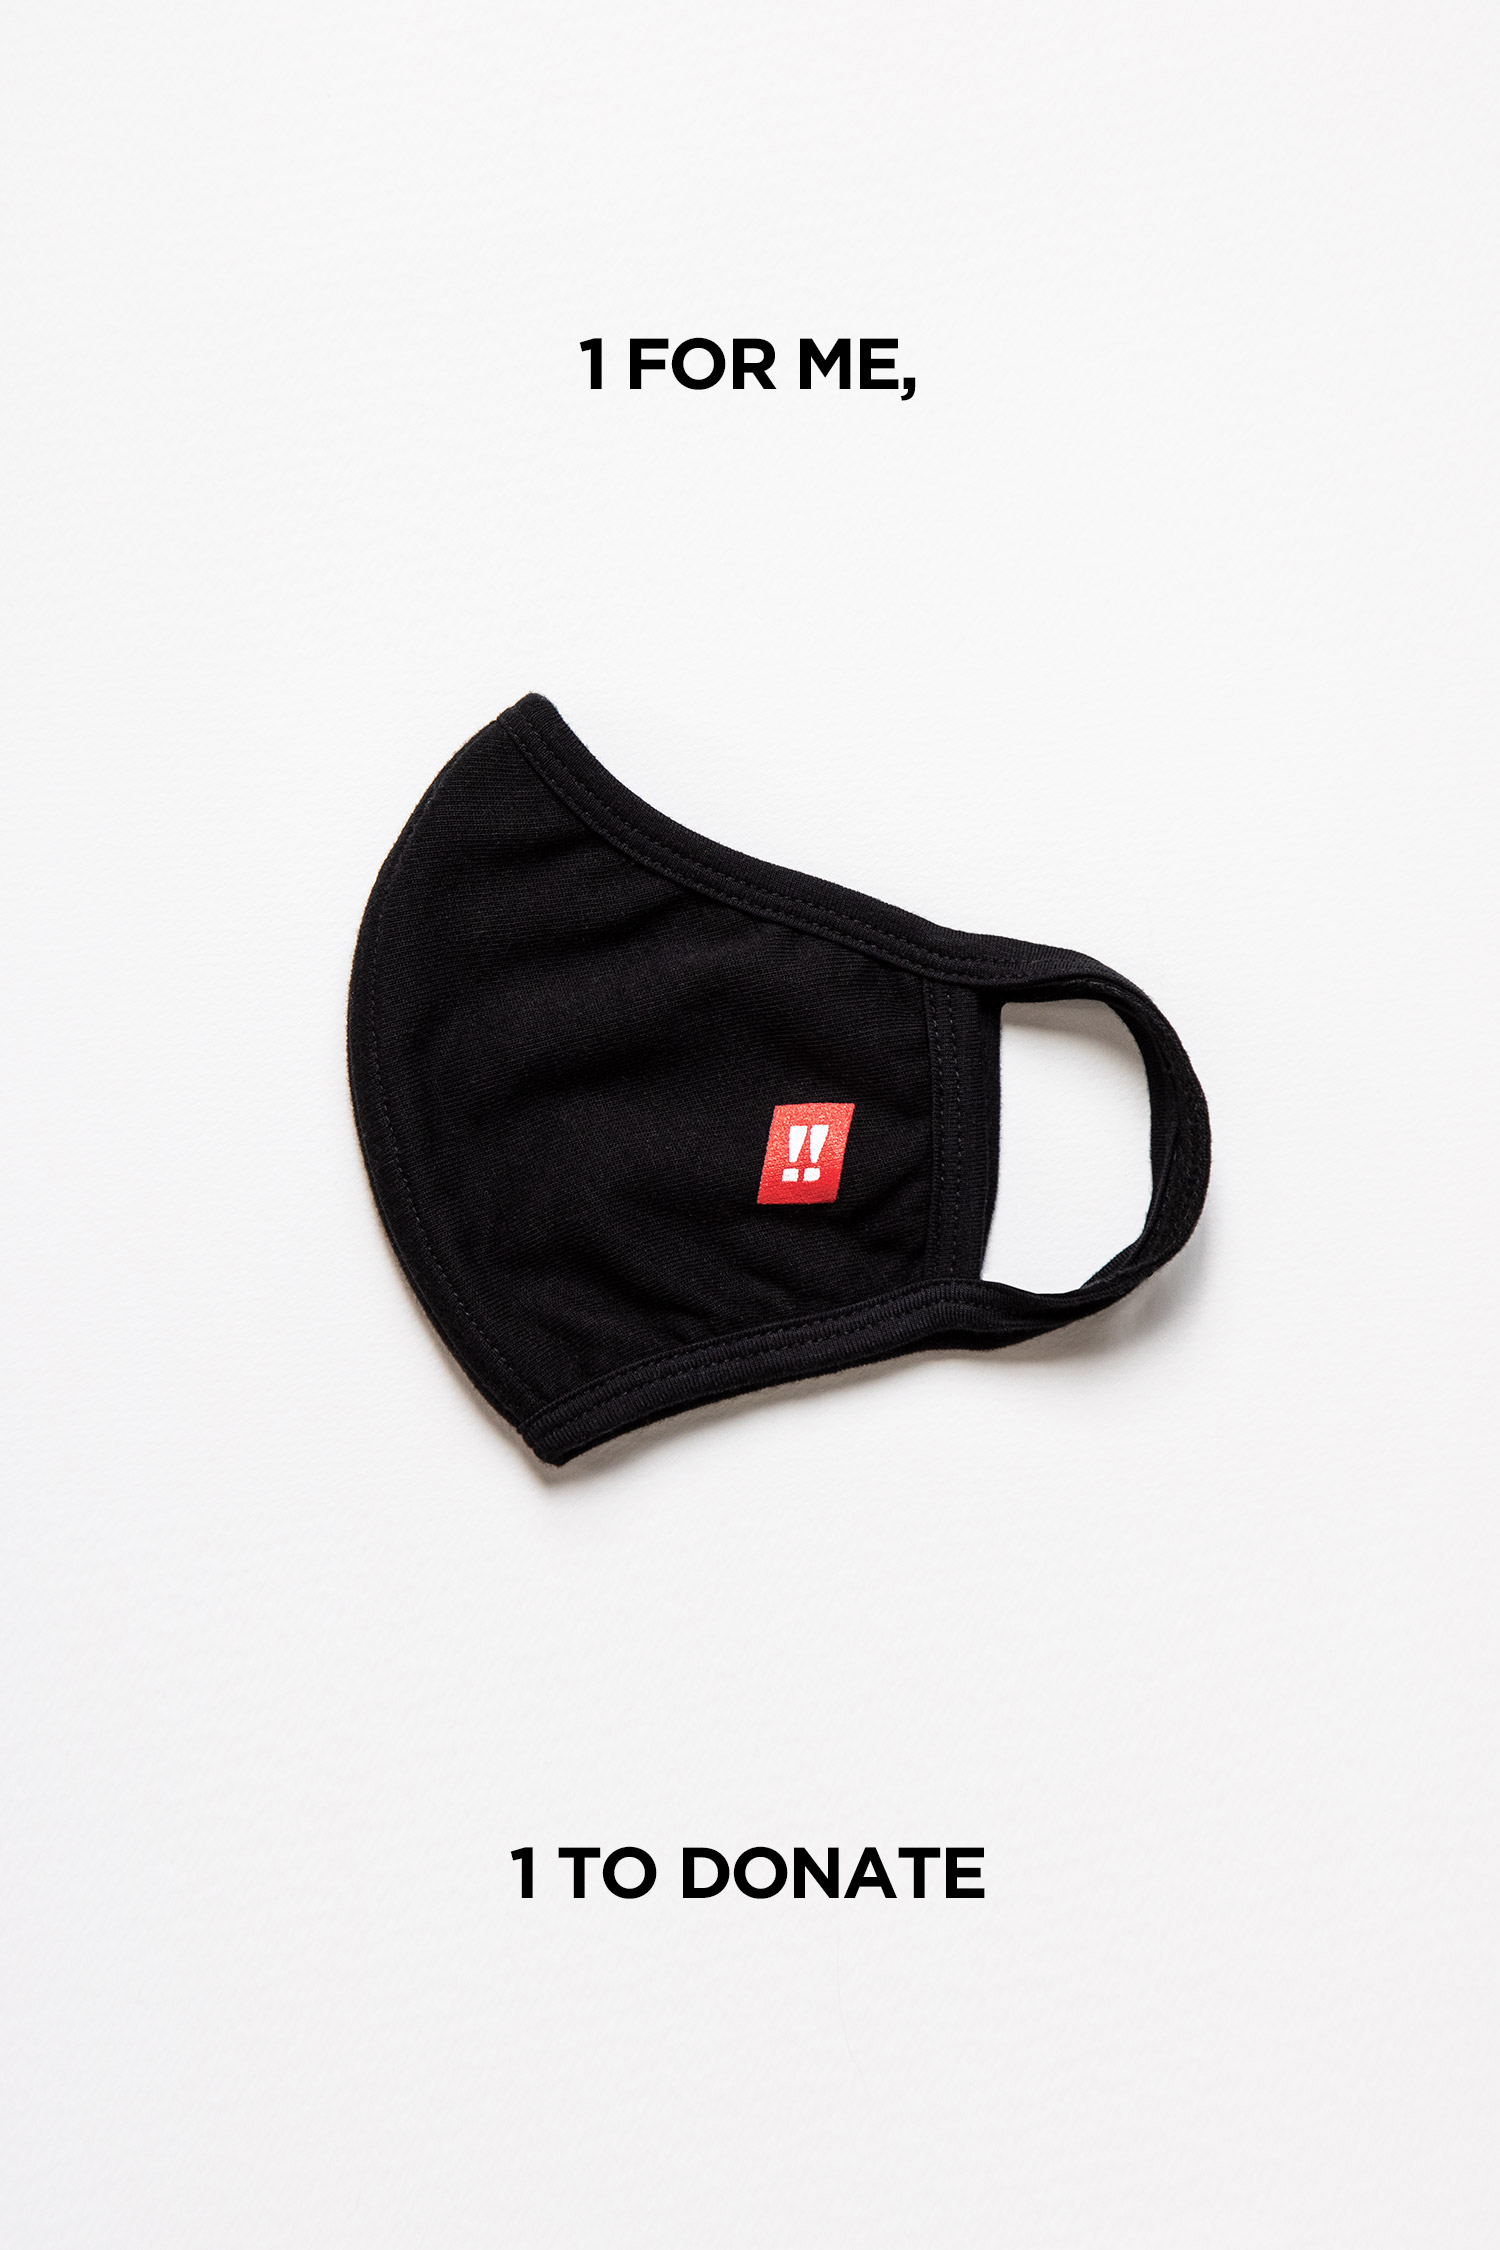 Unisex Face Mask: 1 for me, 1 to donate